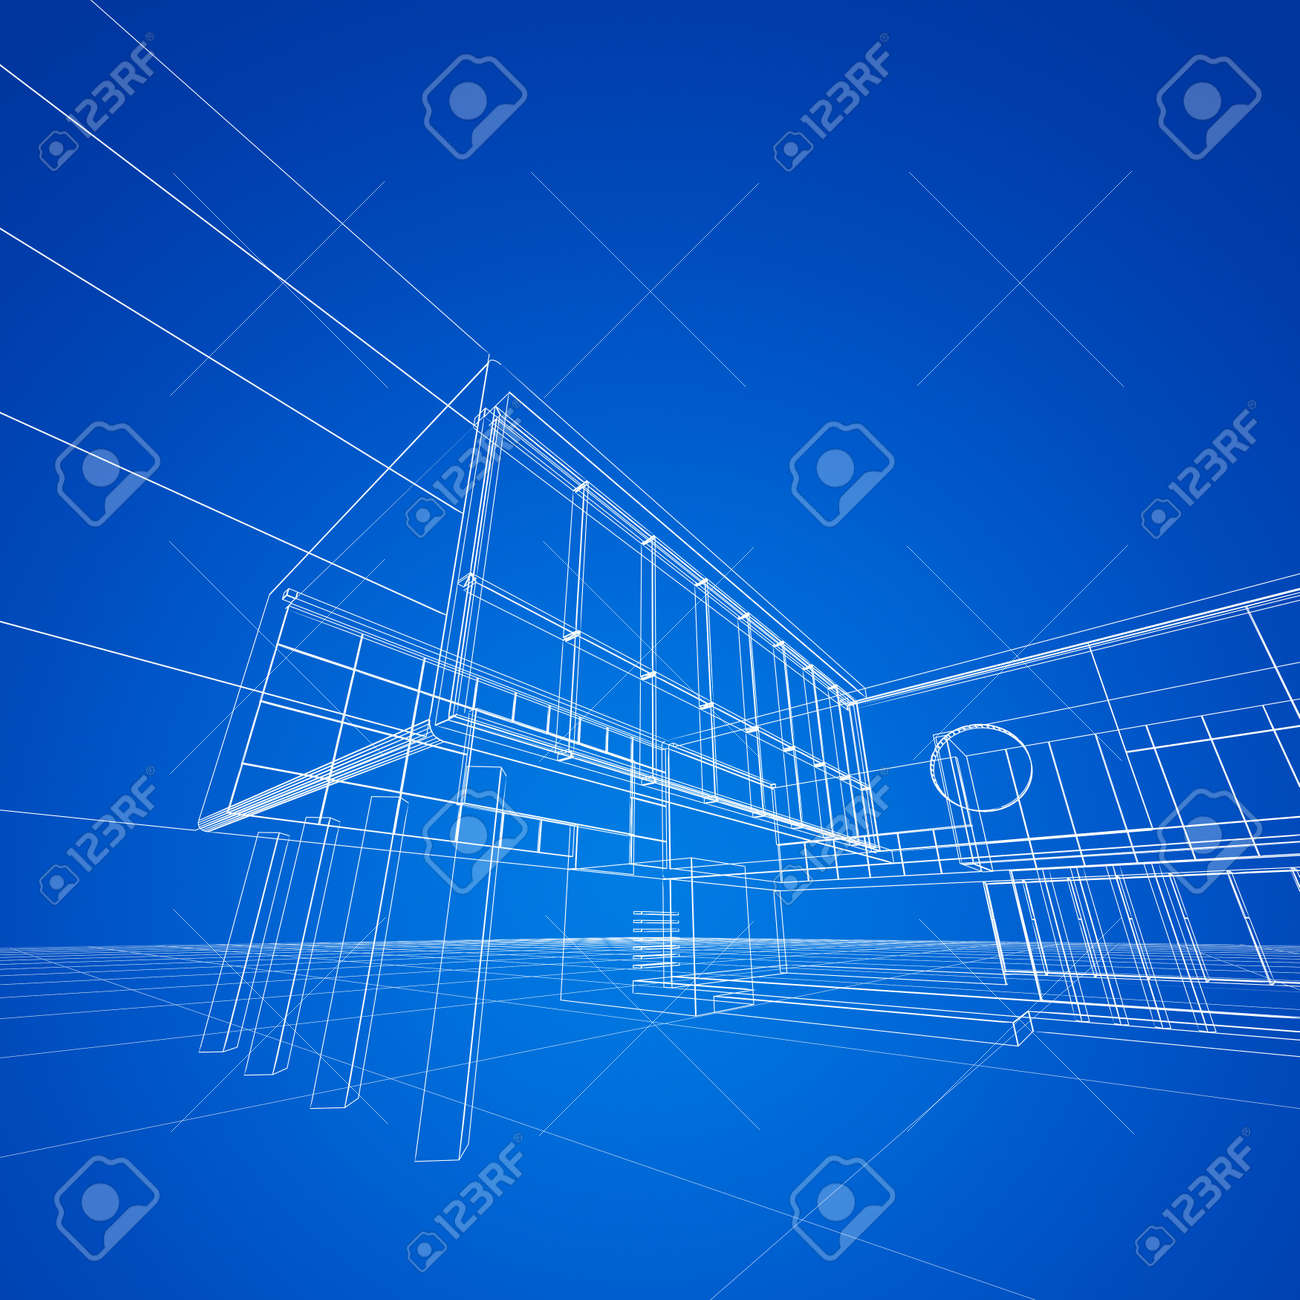 Construction blueprint on blue my design and 3d model stock photo construction blueprint on blue my design and 3d model stock photo 17900854 malvernweather Gallery